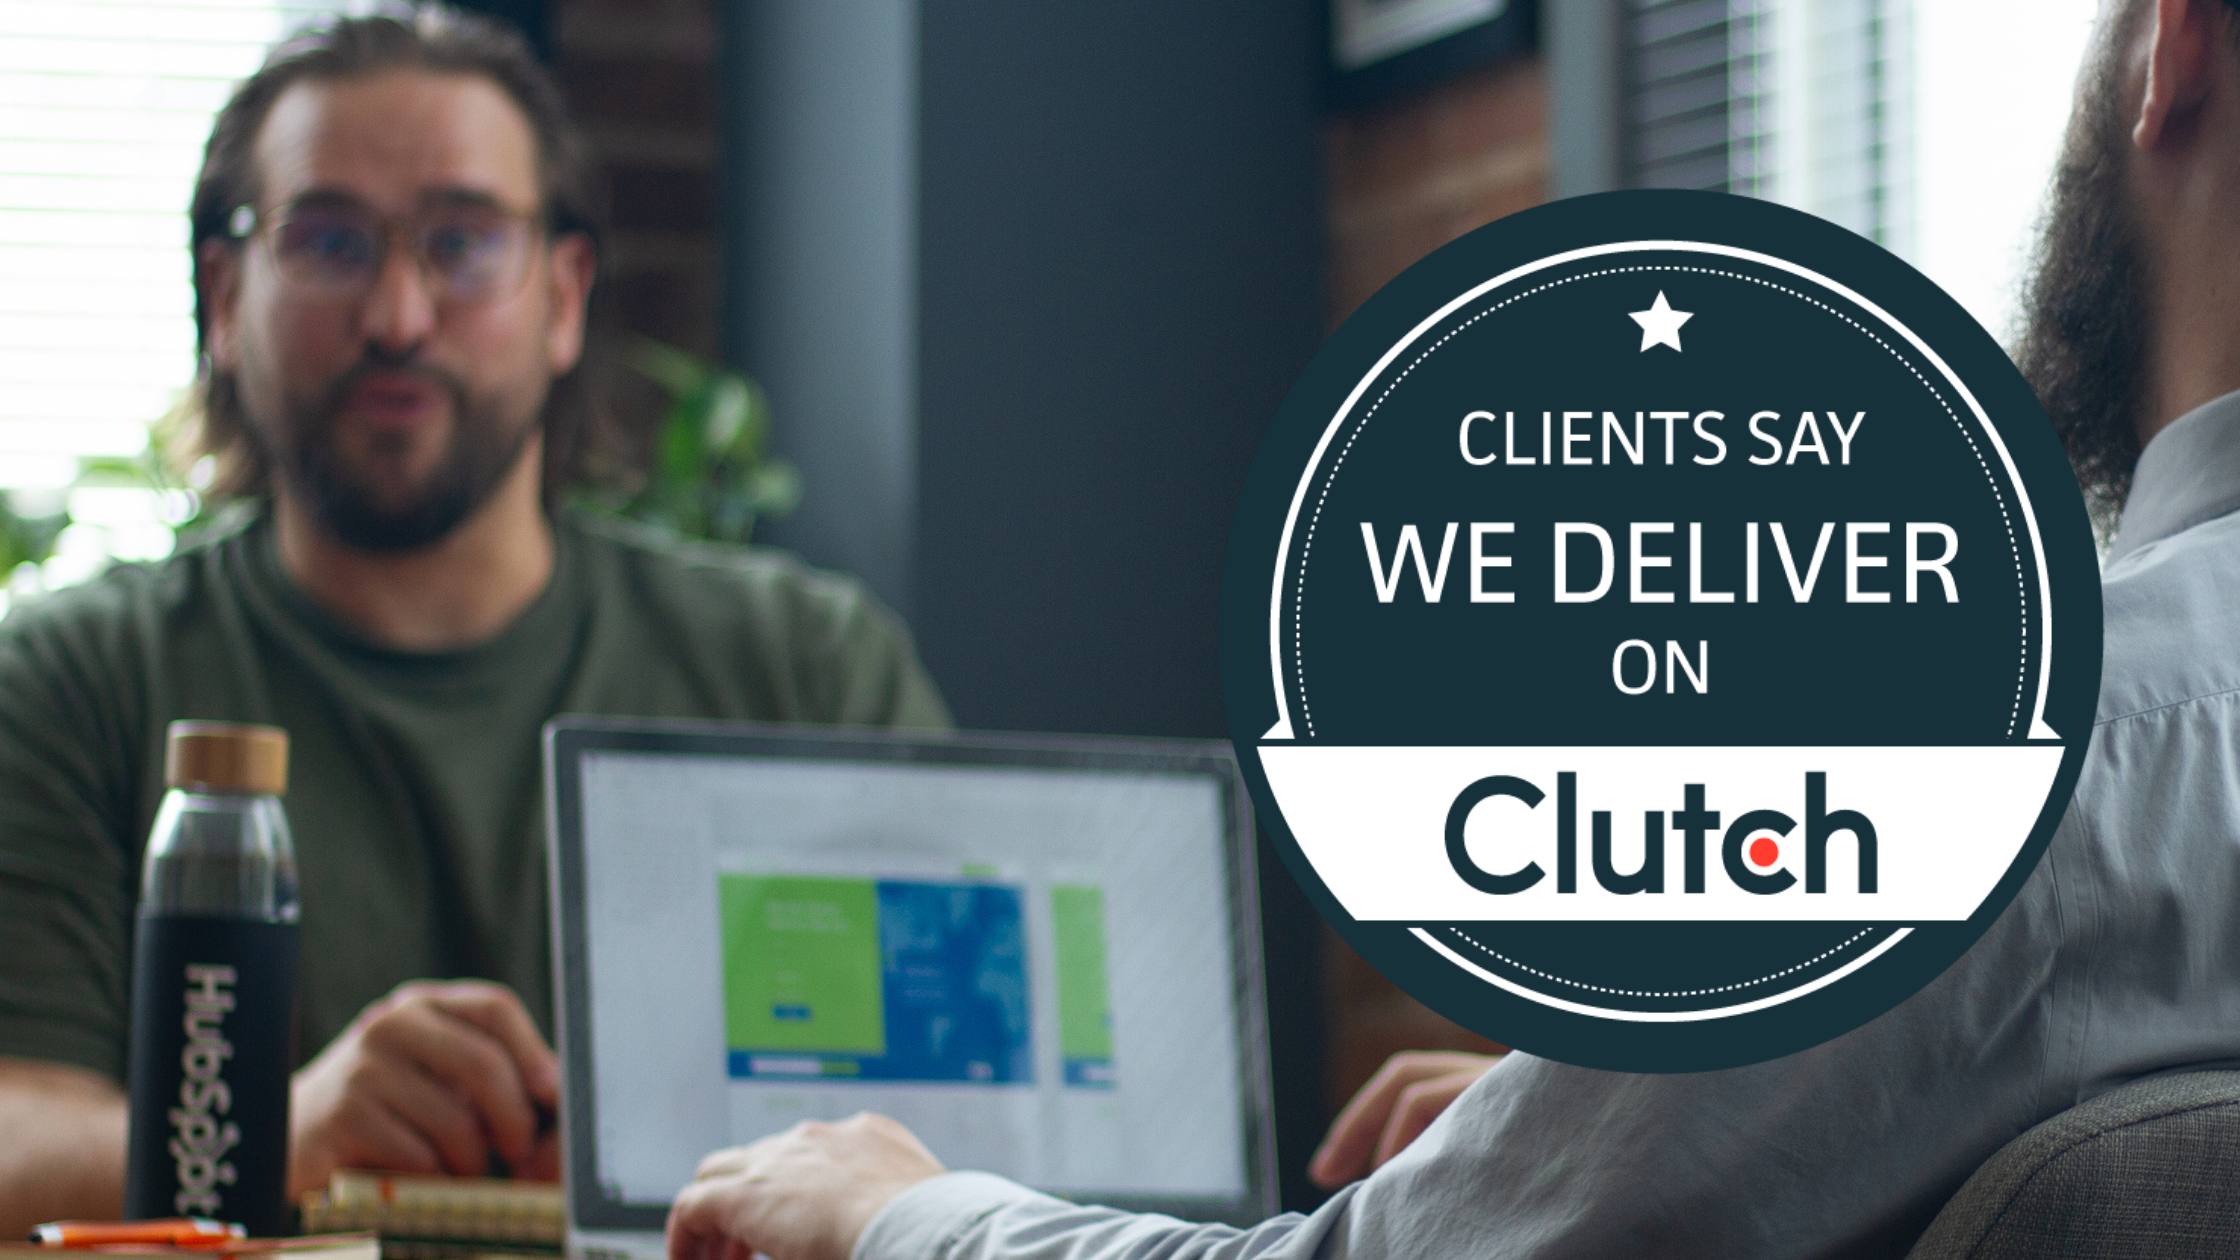 Growth Marketing Firm's First Clutch Review: Five Stars!